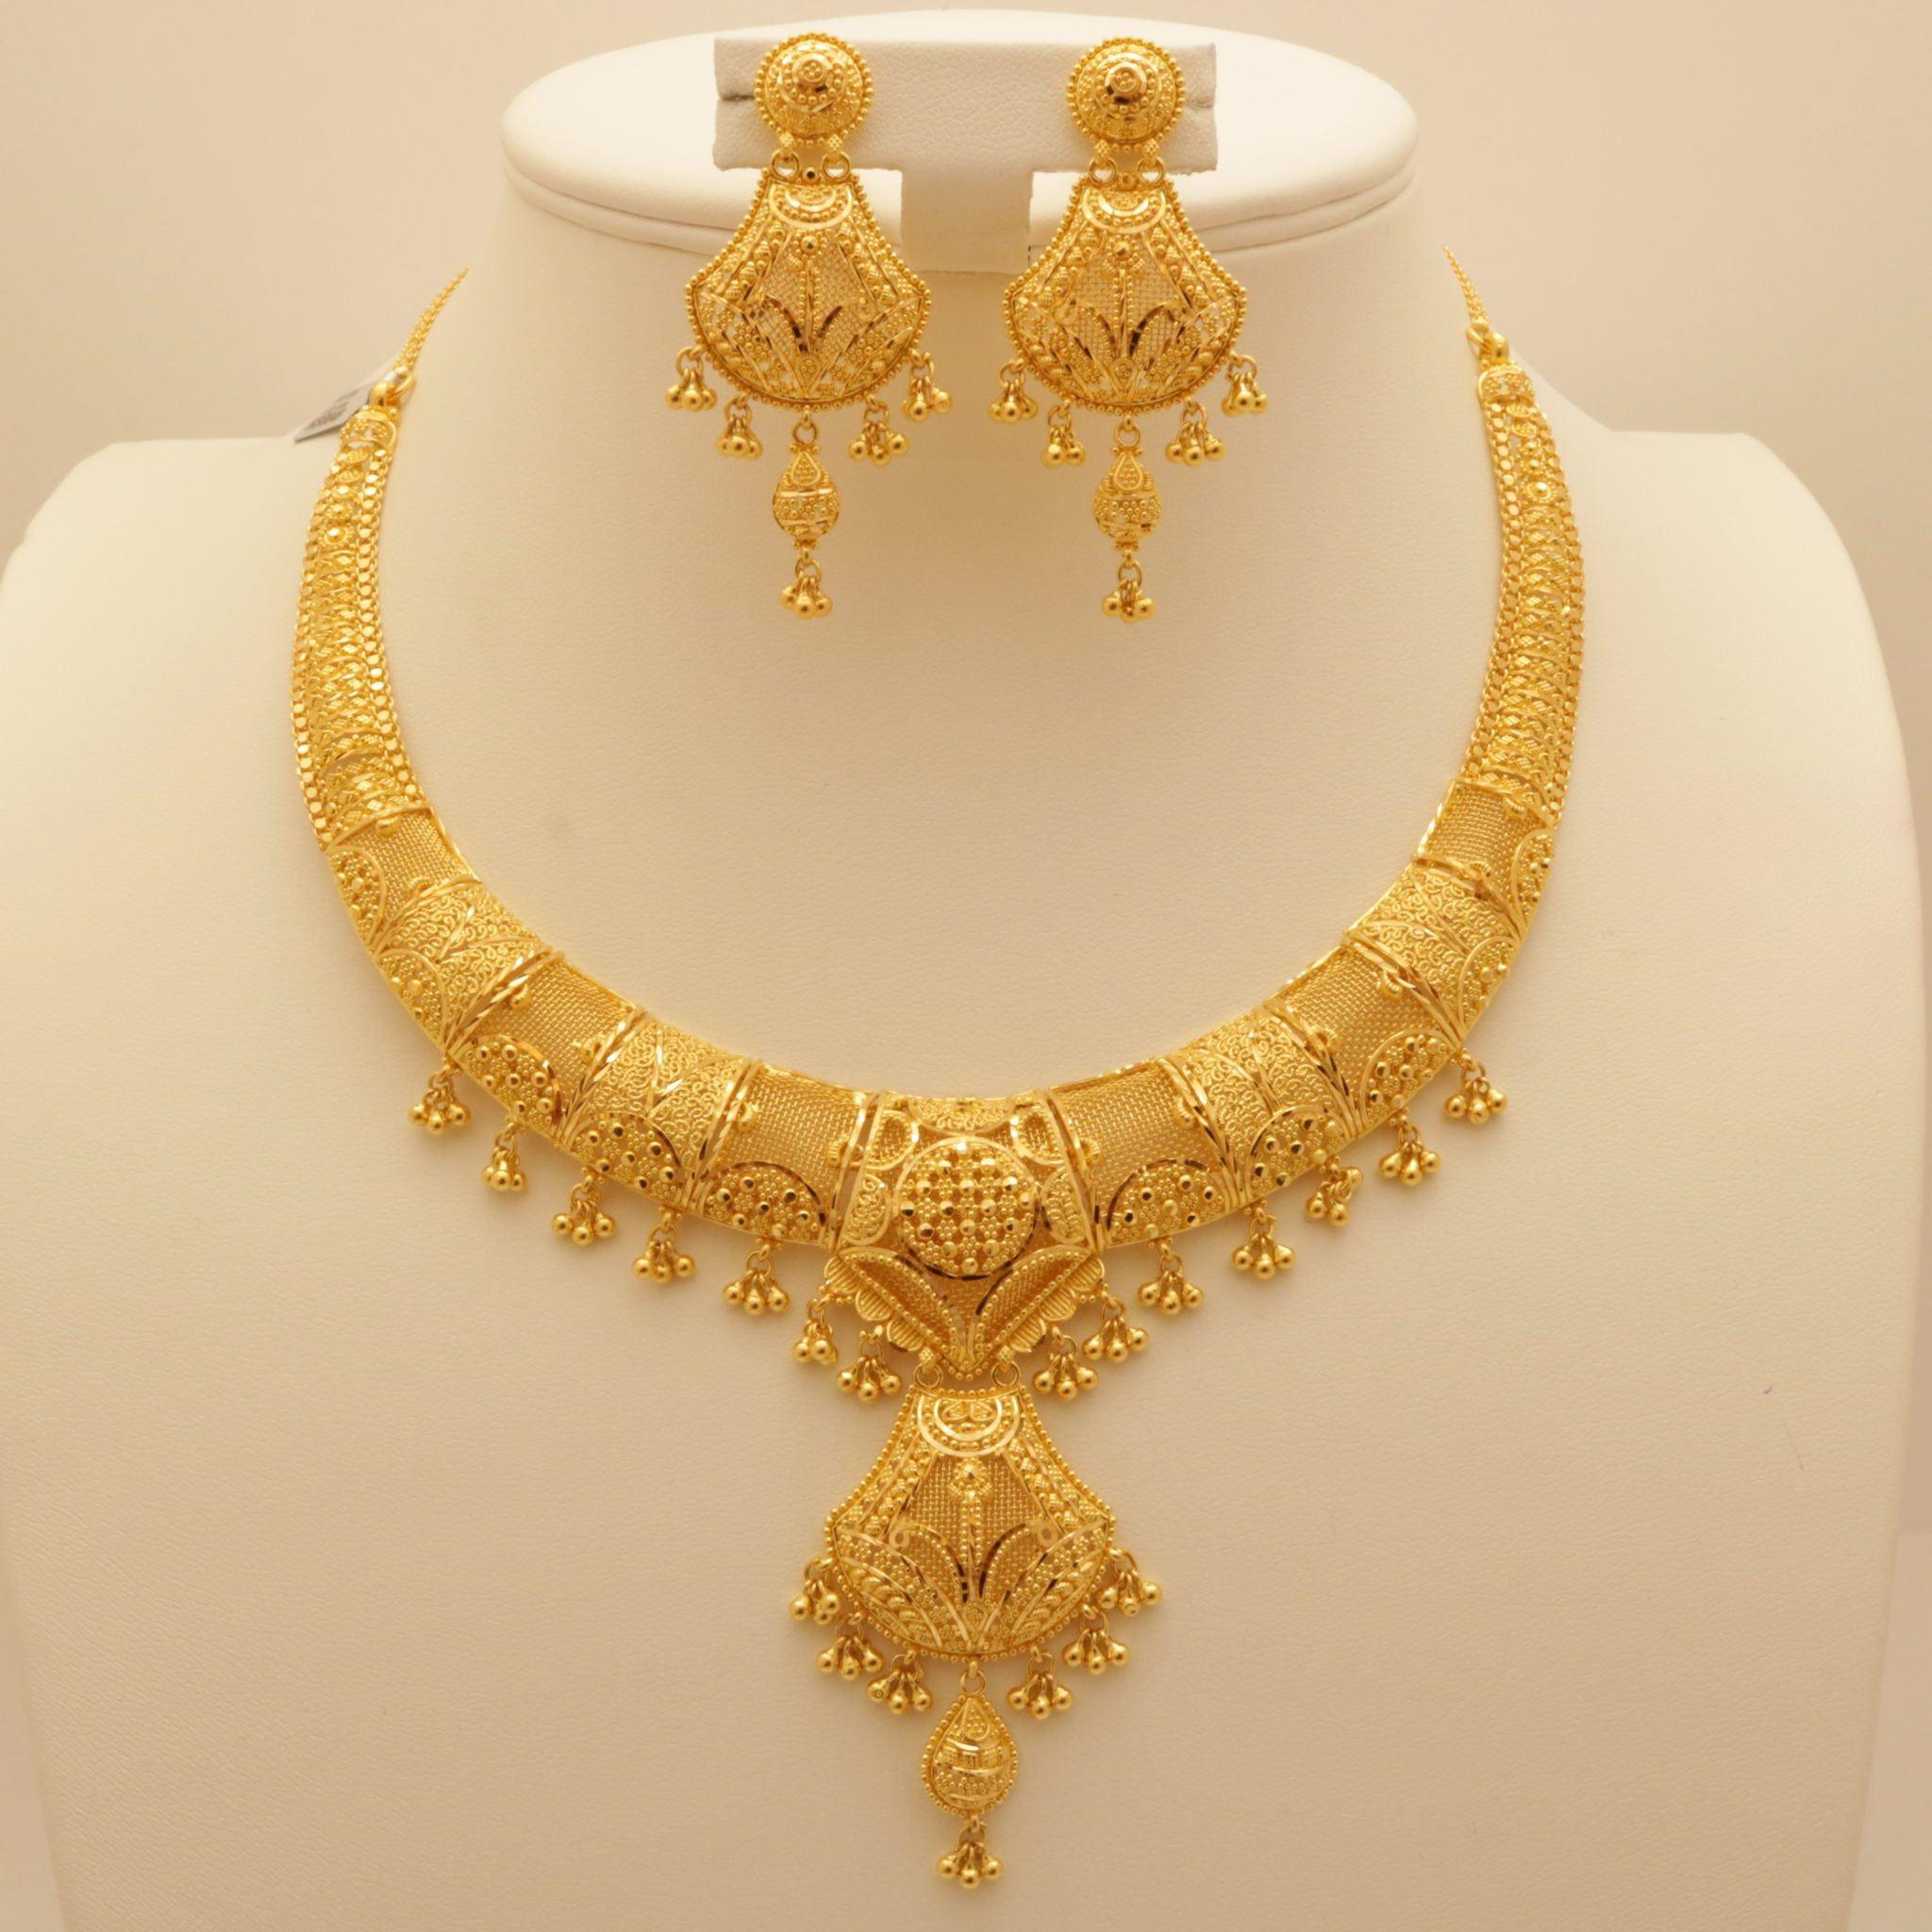 emboss attigai design jewelsmart necklace plated indian immitation south jewellery gold